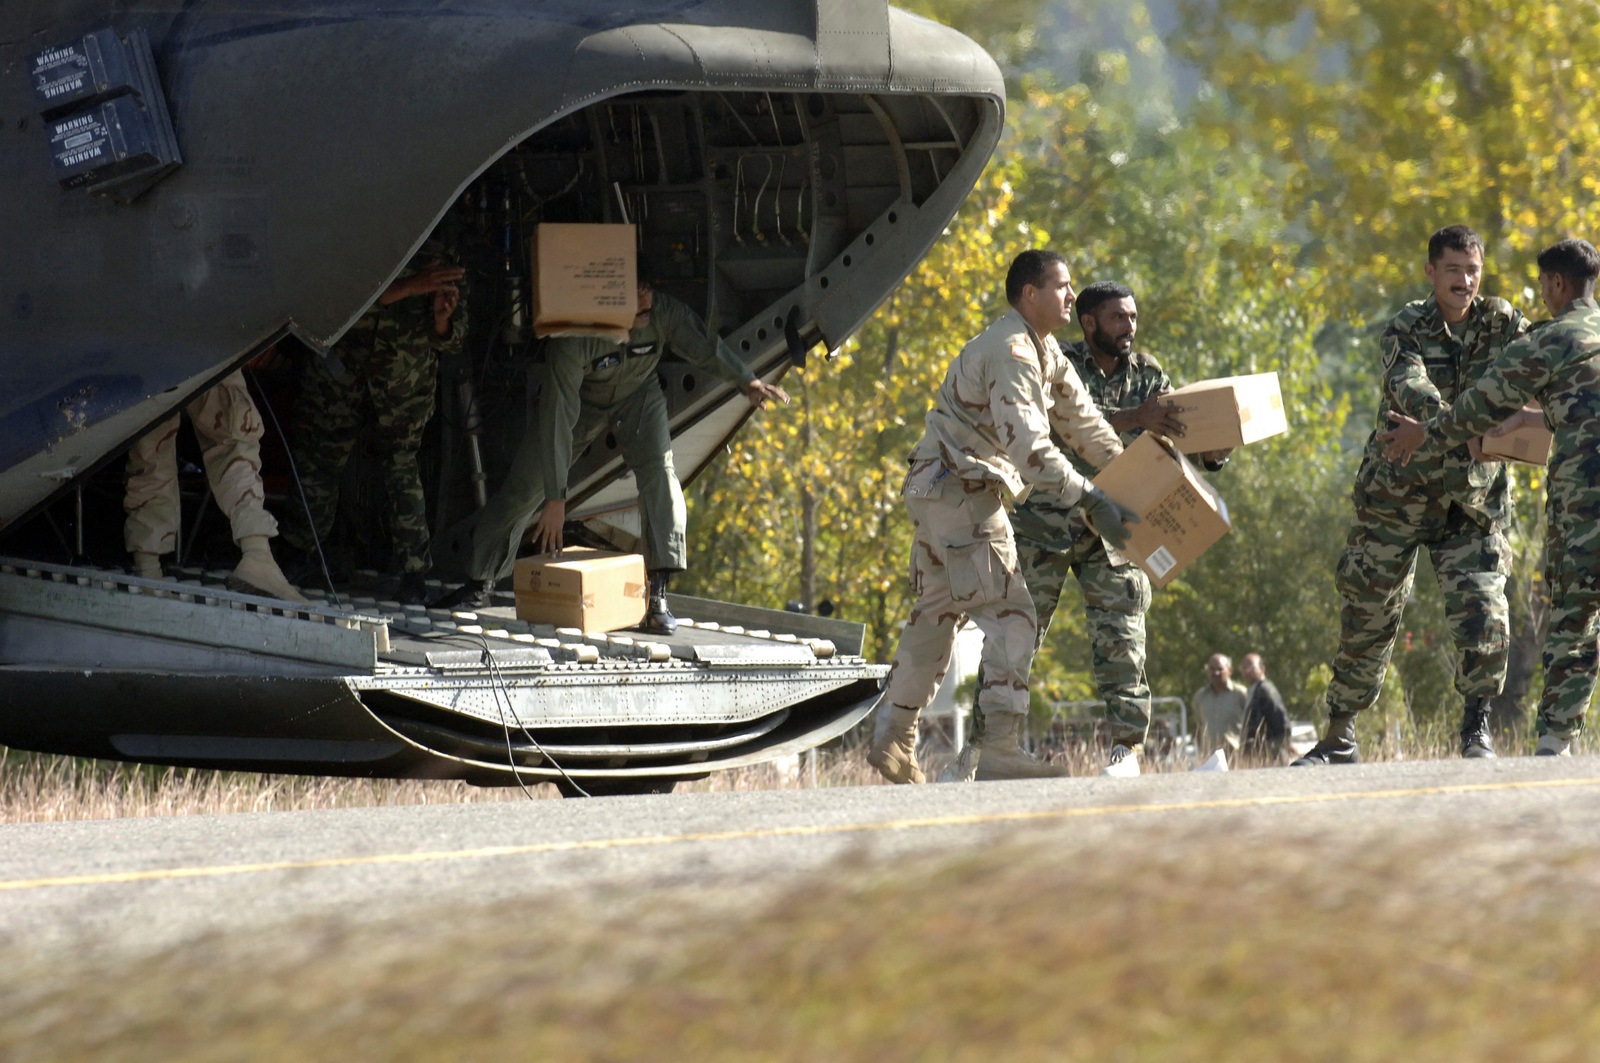 U.S. Army CPL. Amit Ranadey assists in unloading relief supplies from a U.S. Army CH-47 Chinook helicopter in the village of Rawala Kot, Pakistan, on Oct. 14, 2005.  The Department of Defense is participating in the multinational effort to provide humanitarian assistance and support to Pakistan and parts of India and Afghanistan following a devastating earthquake.  D(U.S. Army photo by SPC. Christopher Admire) (Released)